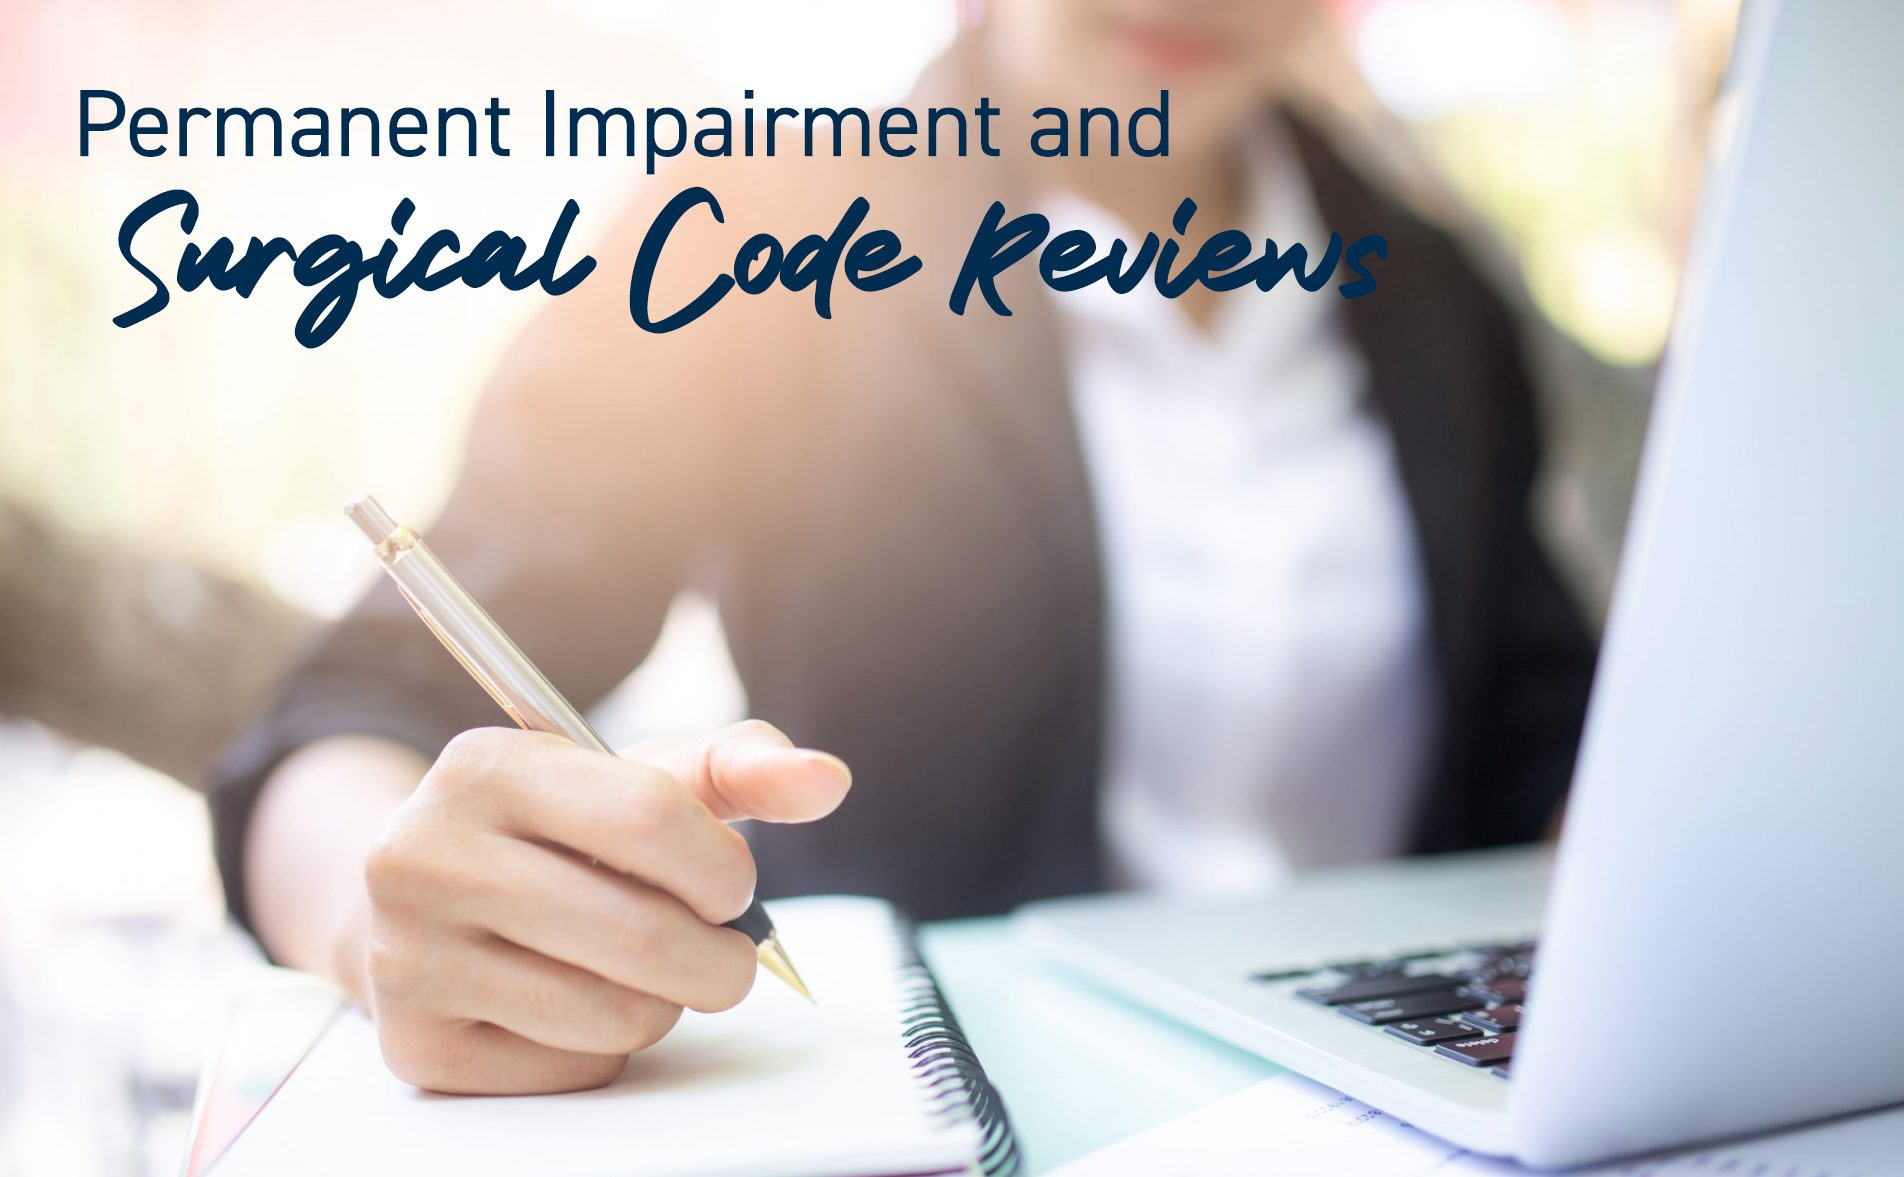 Surgical code review